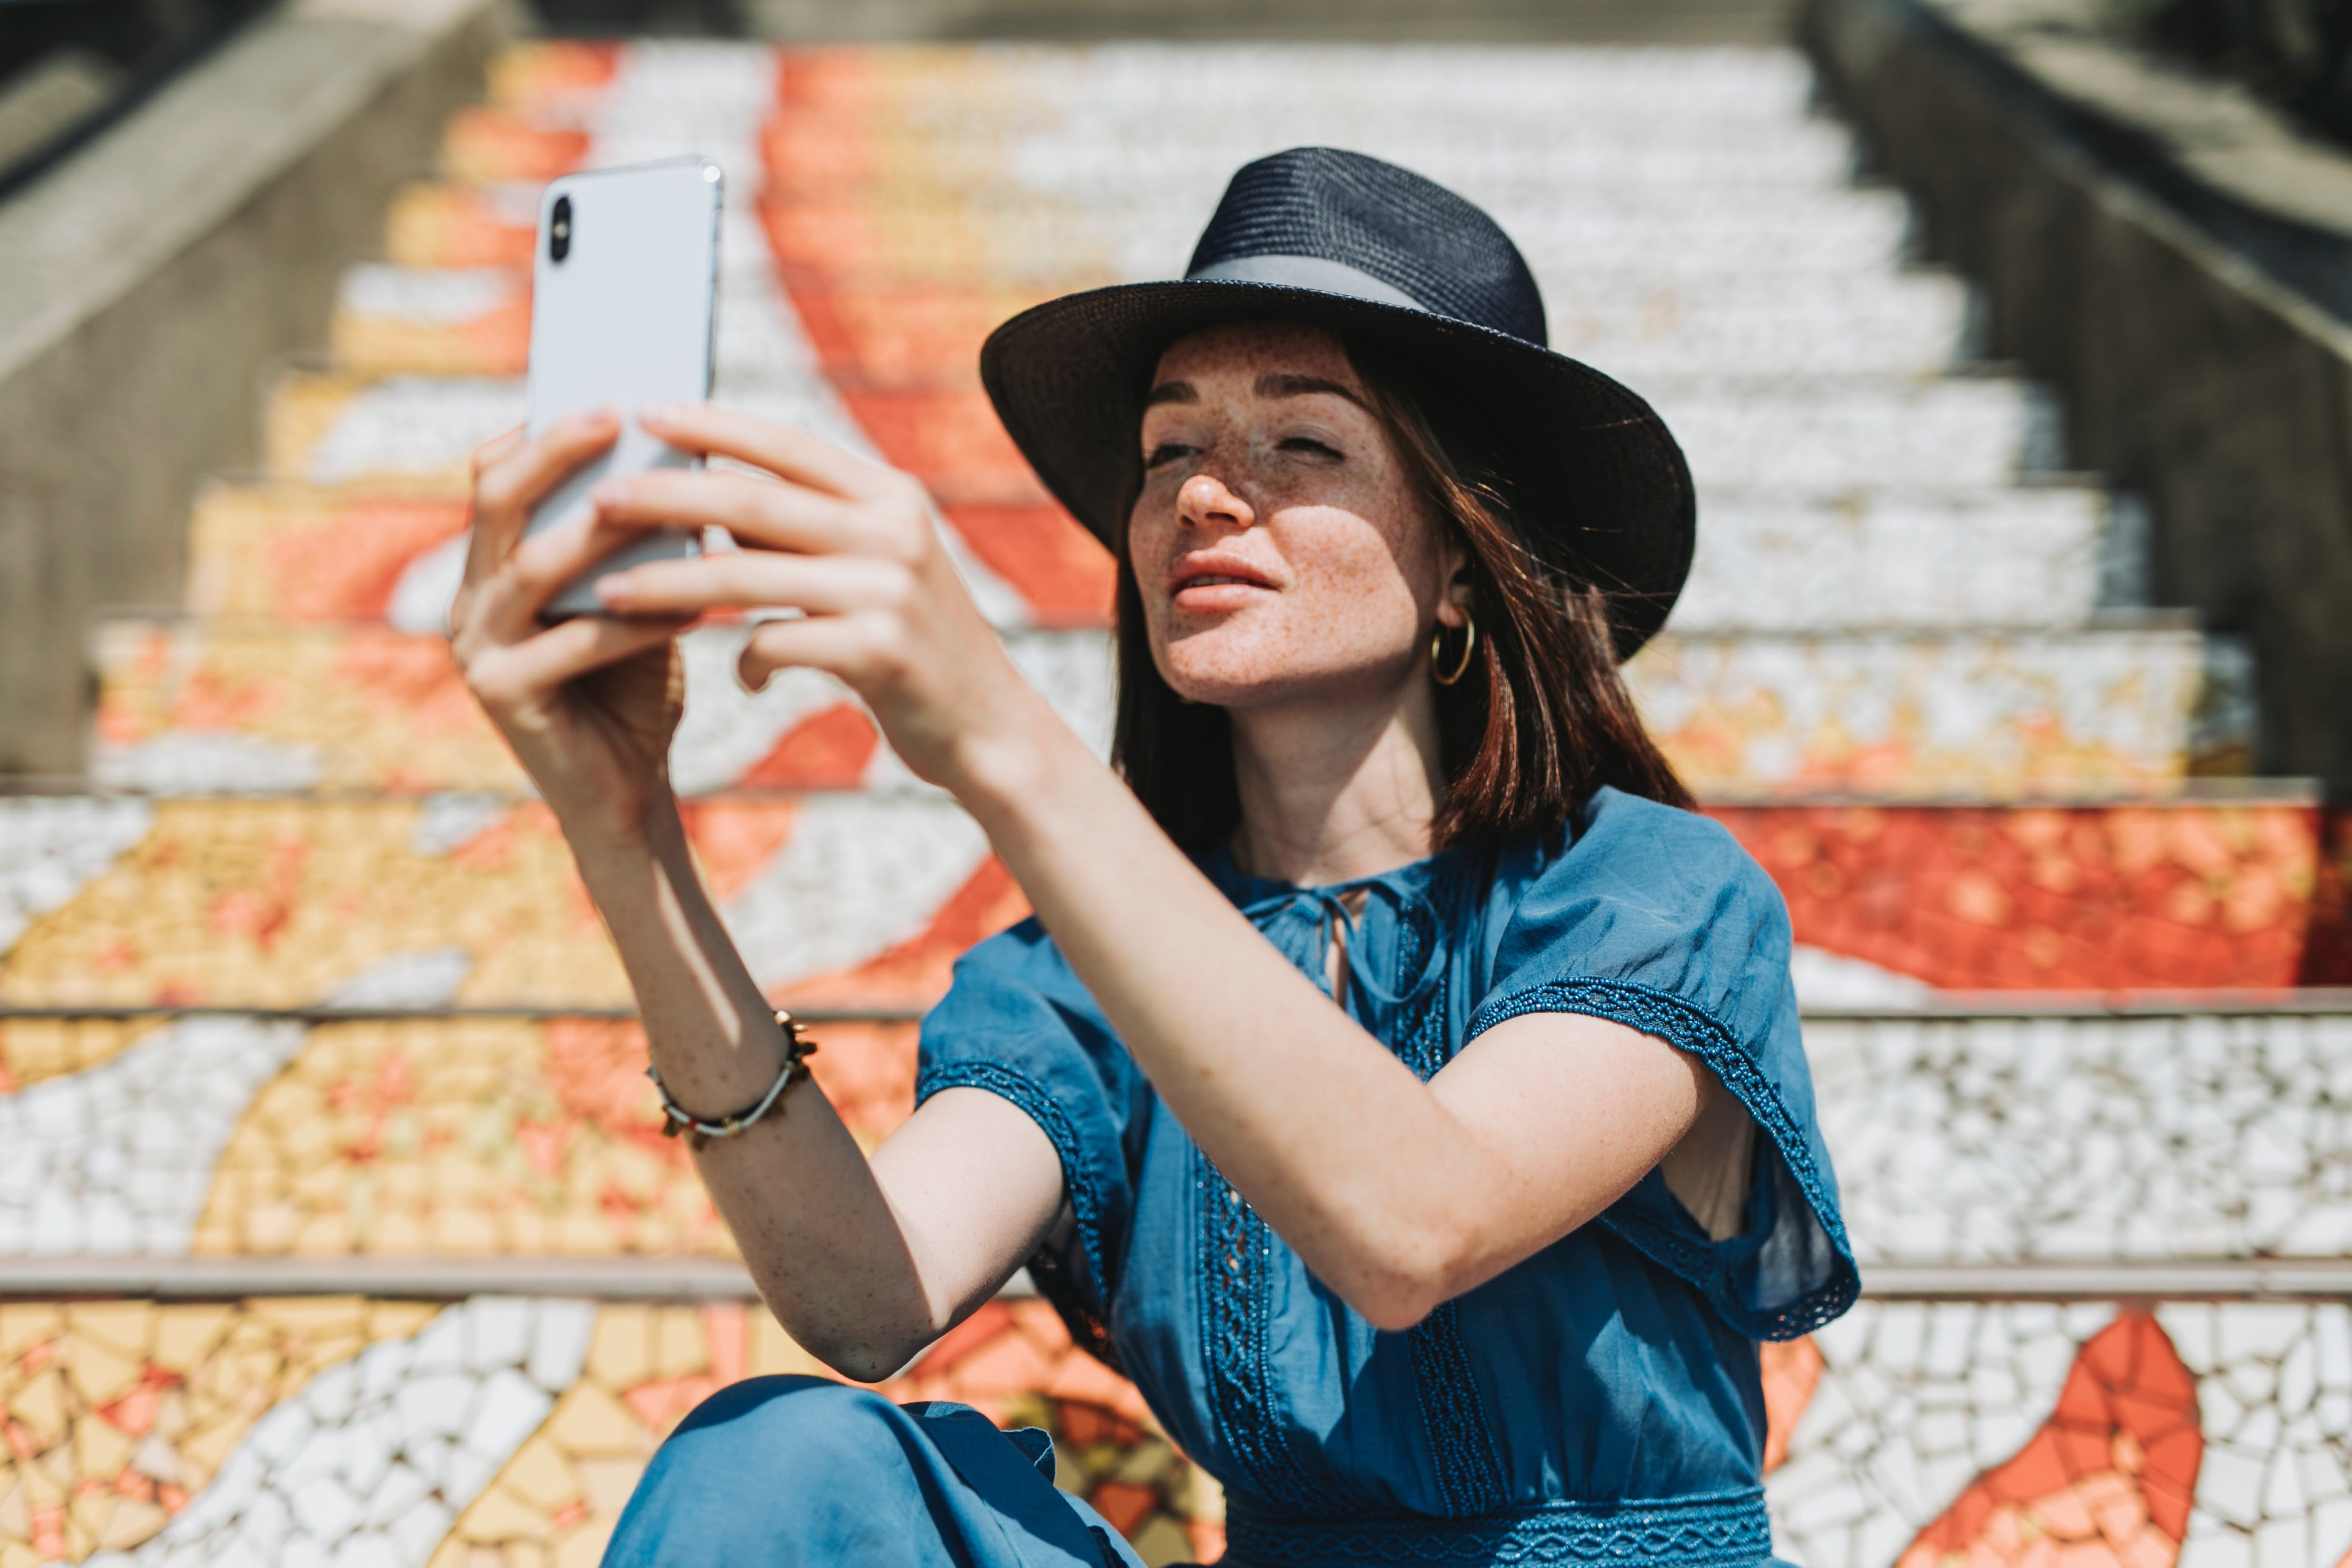 A girl sitting on a staircase and taking a selfie